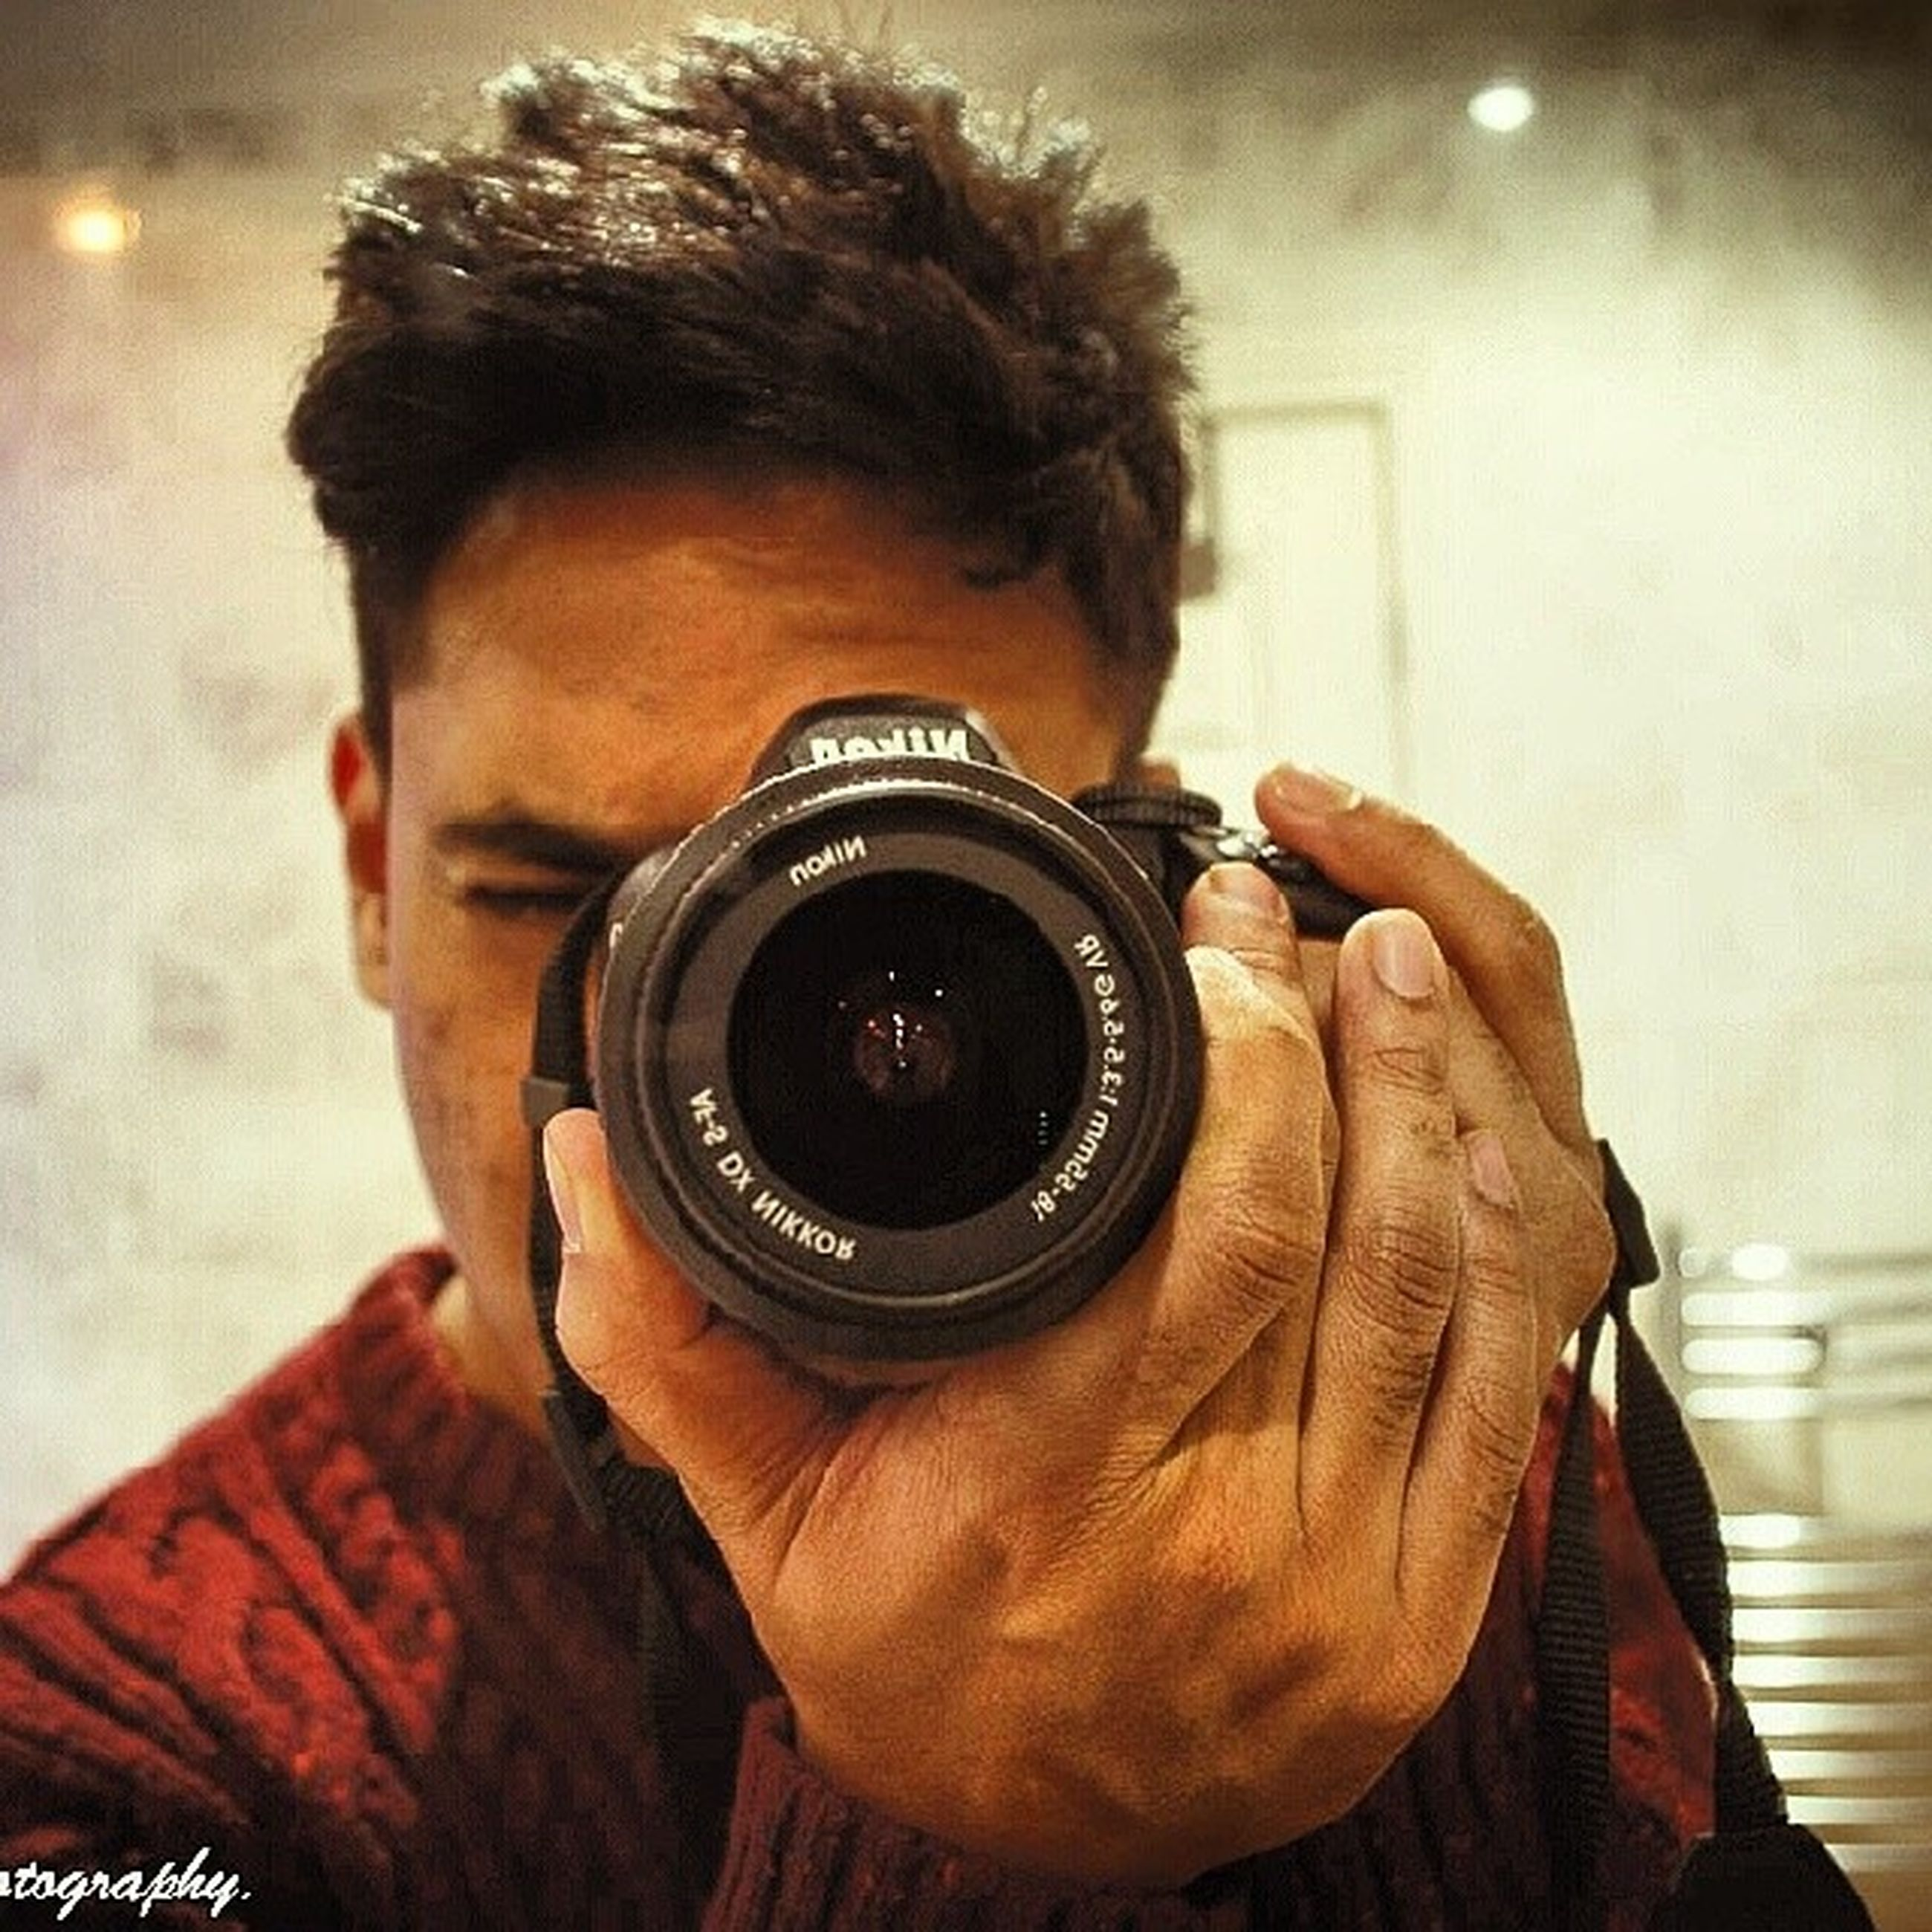 photography themes, technology, lifestyles, indoors, headshot, holding, leisure activity, photographing, young men, camera - photographic equipment, wireless technology, young adult, men, close-up, digital camera, smart phone, communication, mobile phone